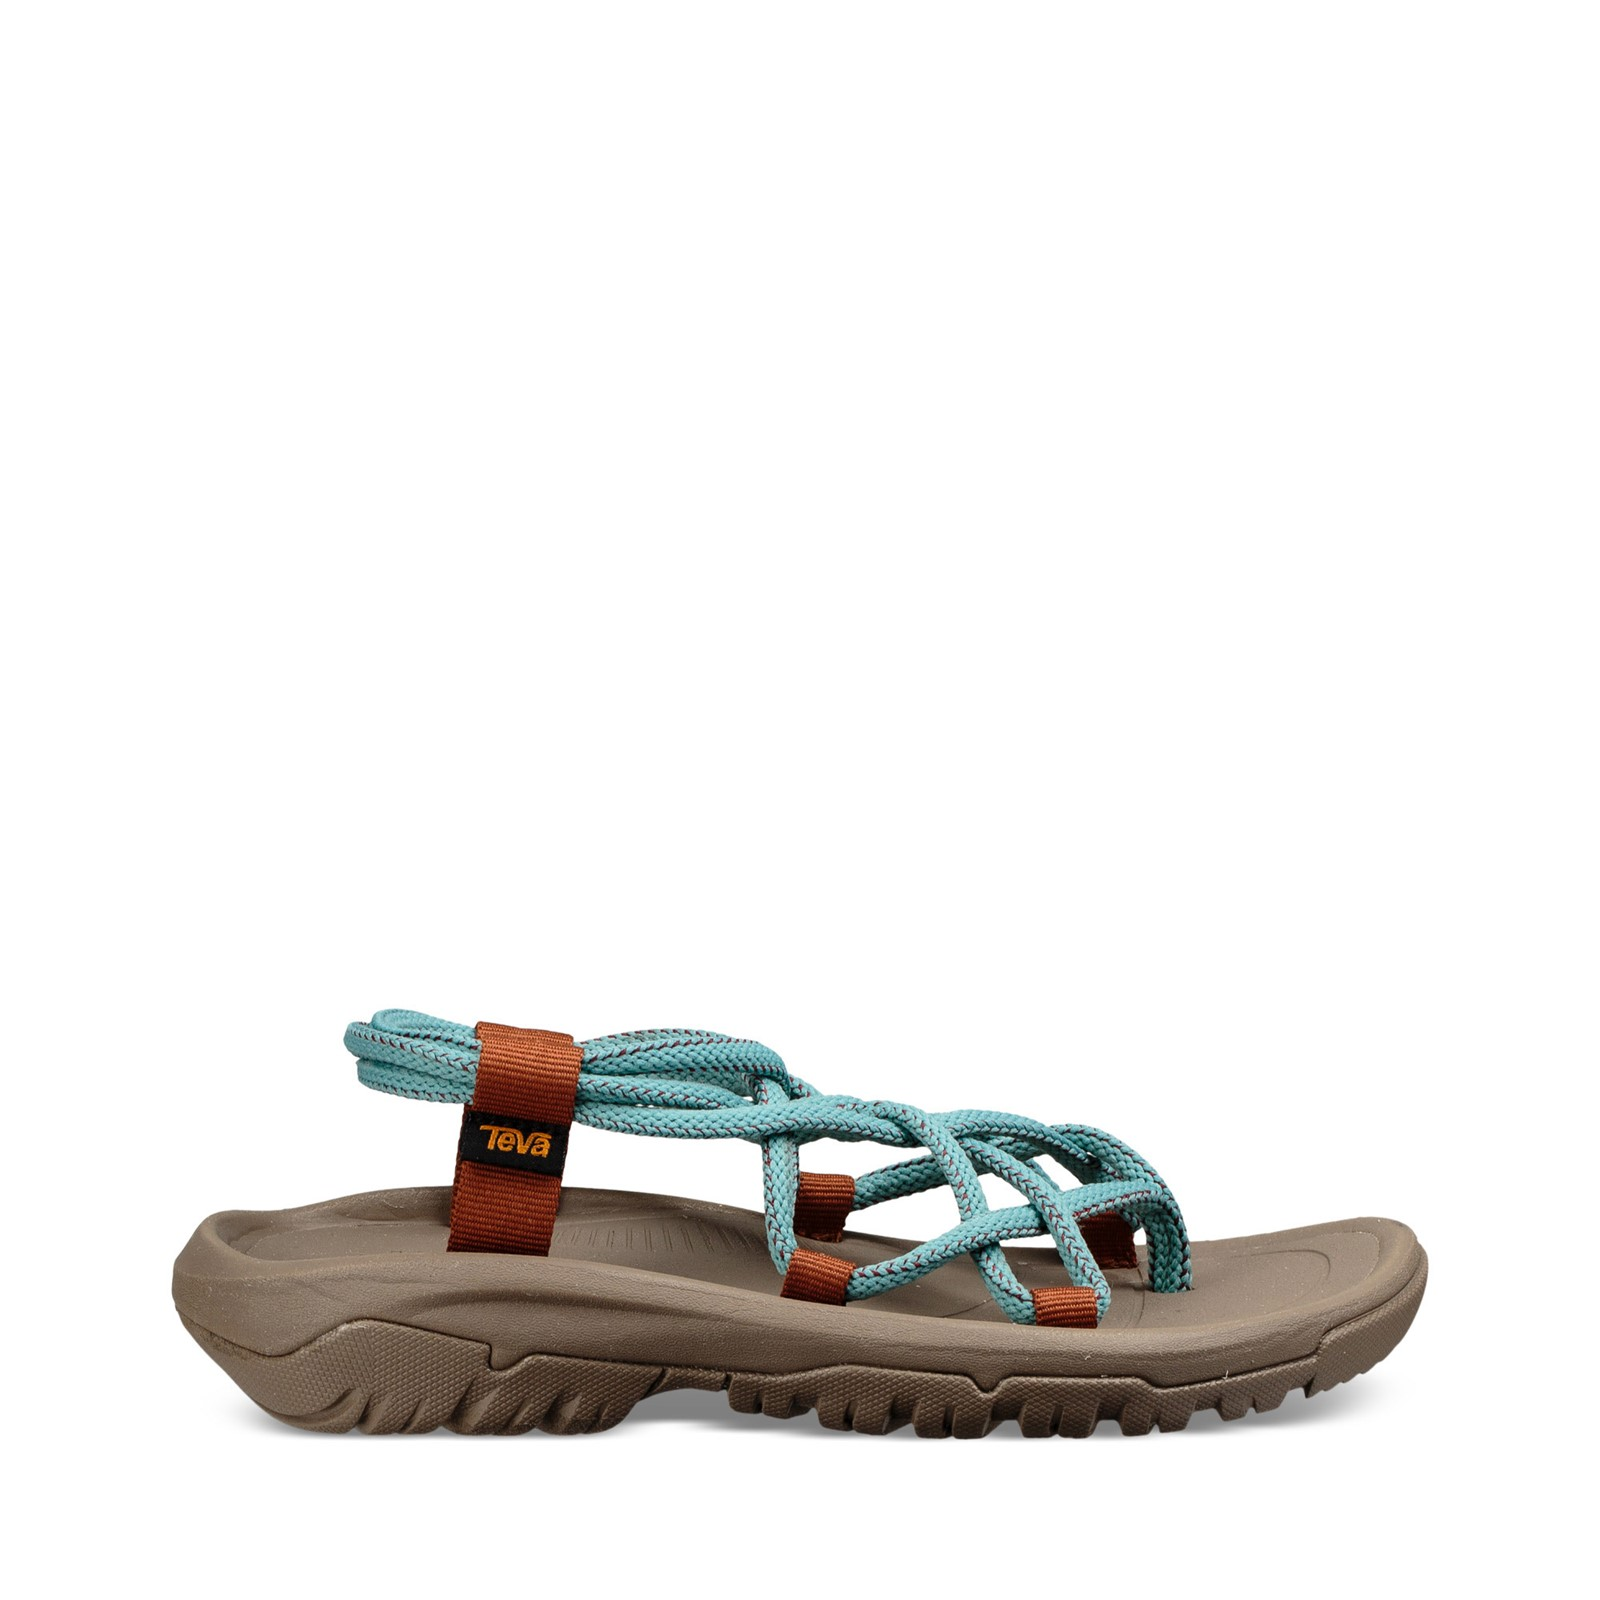 059a7cd2472 Women s Teva